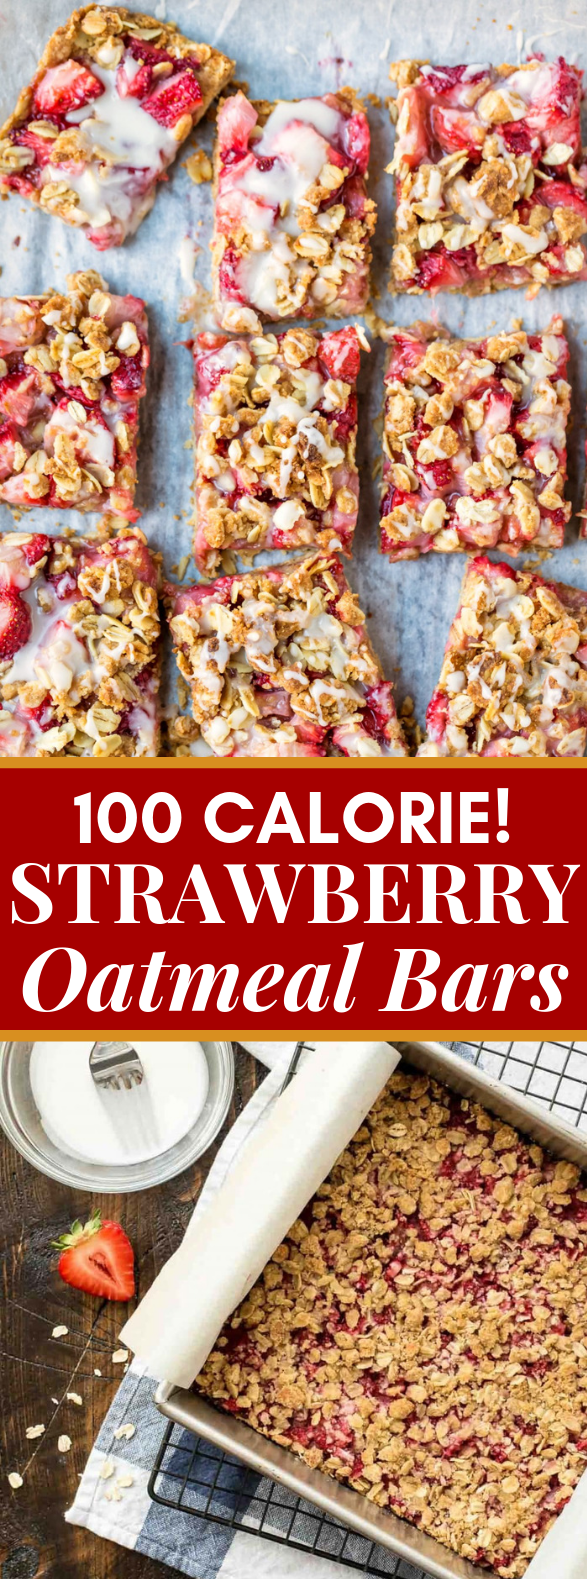 Strawberry Oatmeal Bars #healthy #dietrecipe